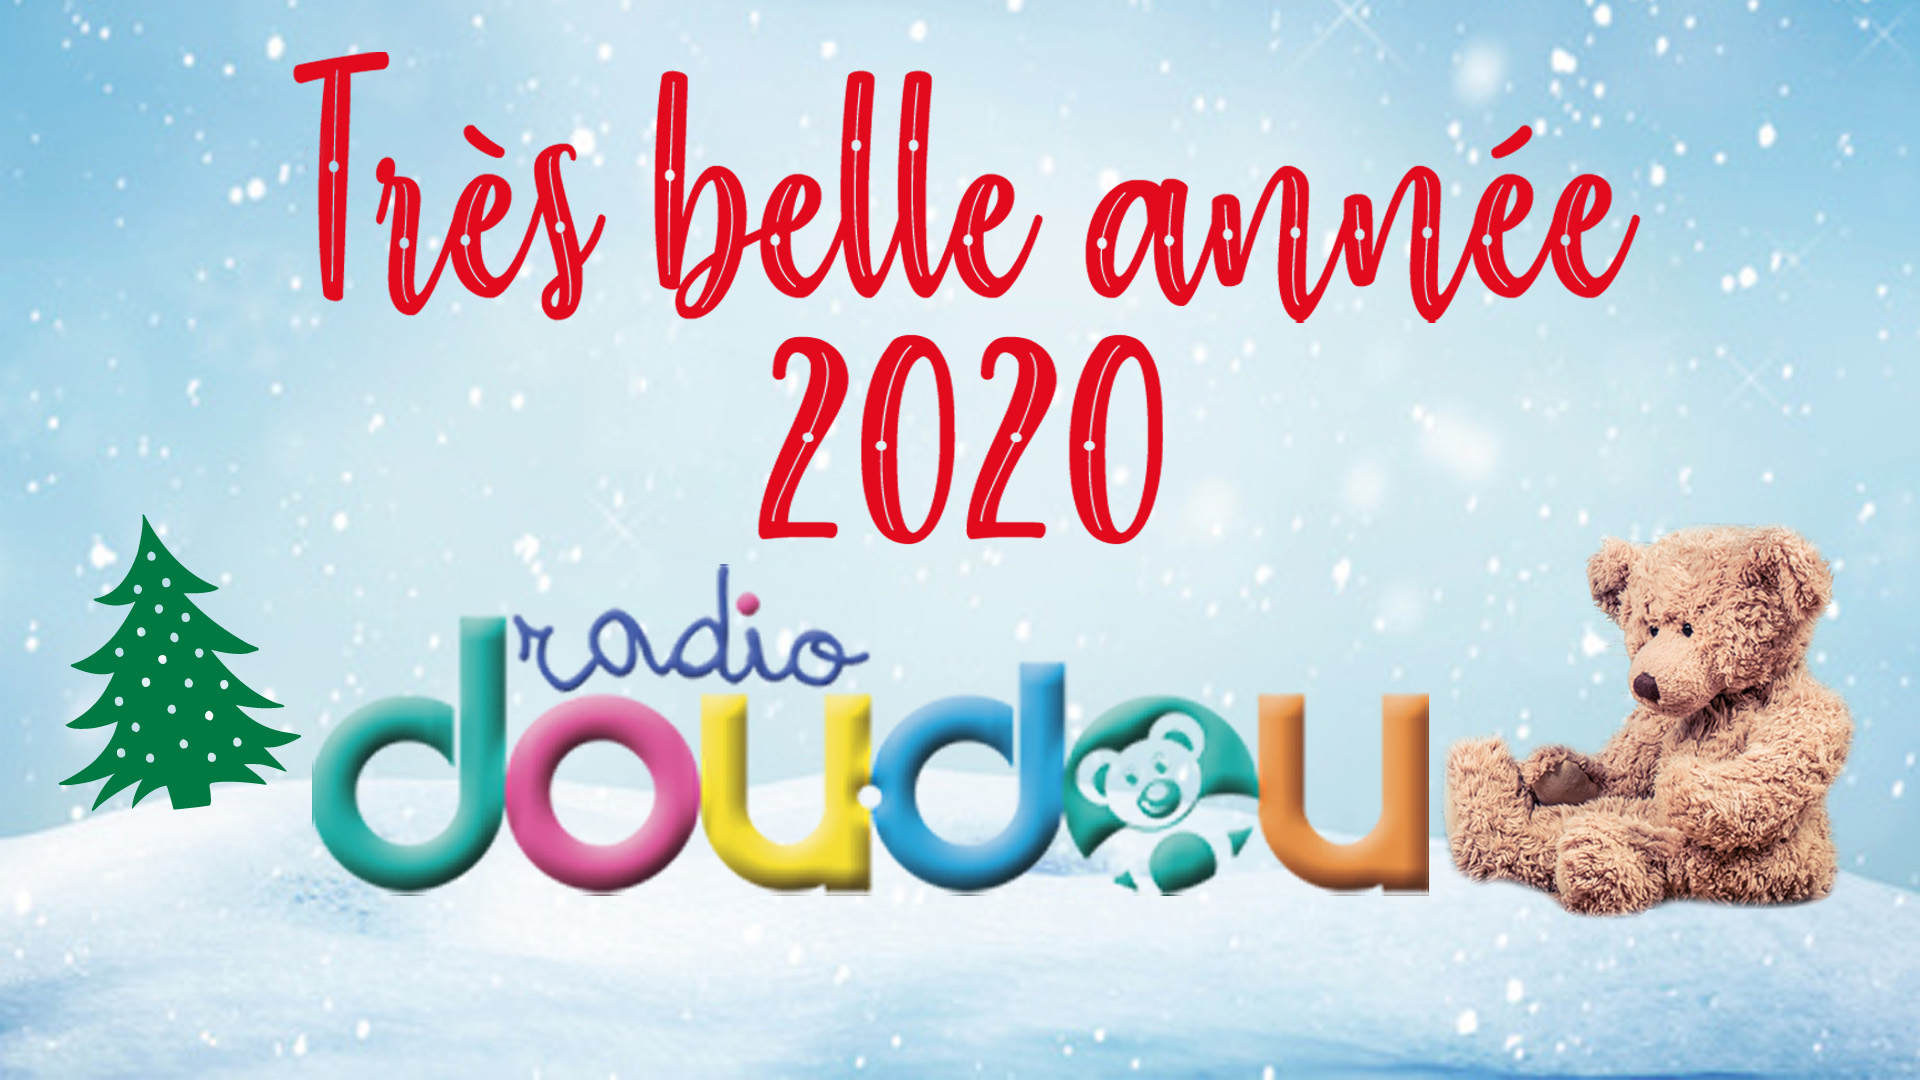 photo événement fbRadio doudou 2020.jpg (426 KB)